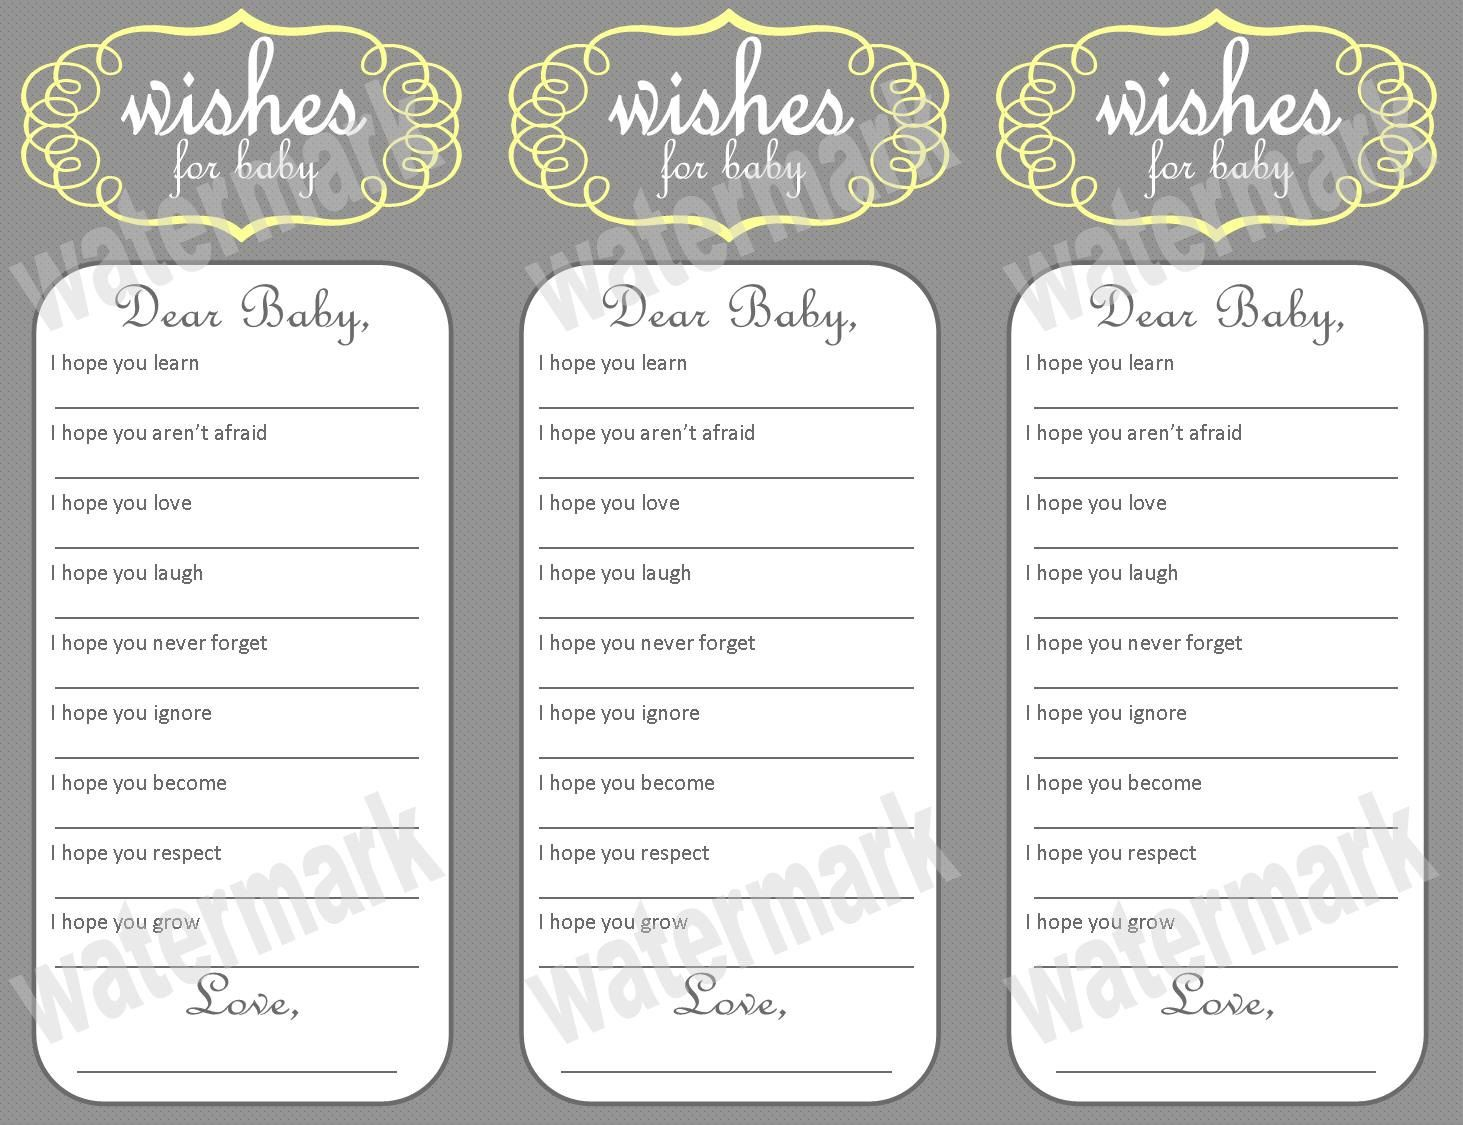 Wishes For Baby Free Printable | Wishes for Baby - Baby Shower ...